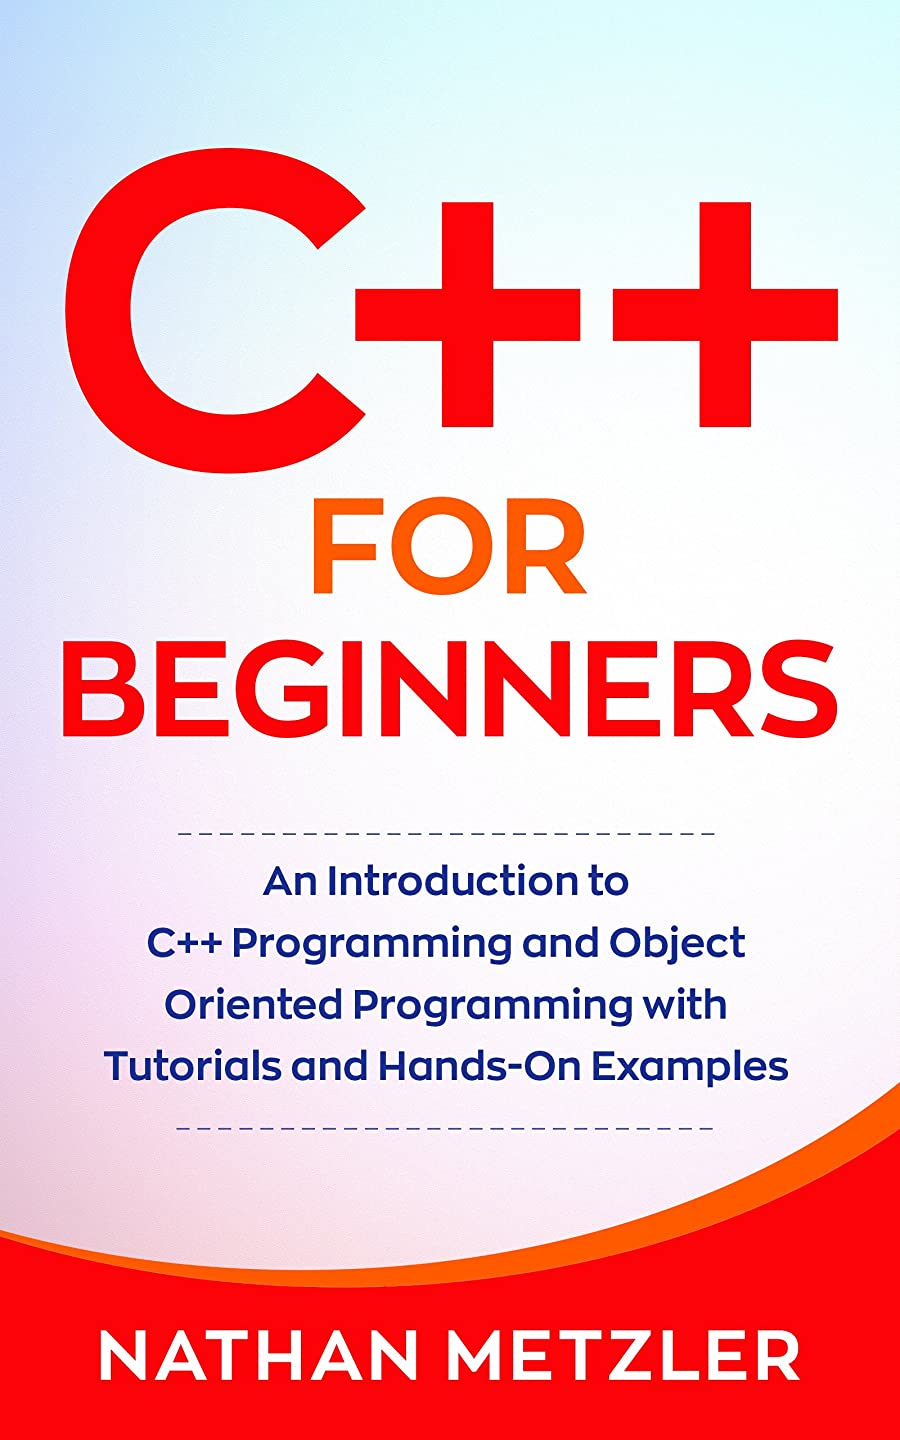 補ういらいらさせる早くC++ for Beginners: An Introduction to C++ Programming and Object Oriented Programming with Tutorials and Hands-On Examples (English Edition)